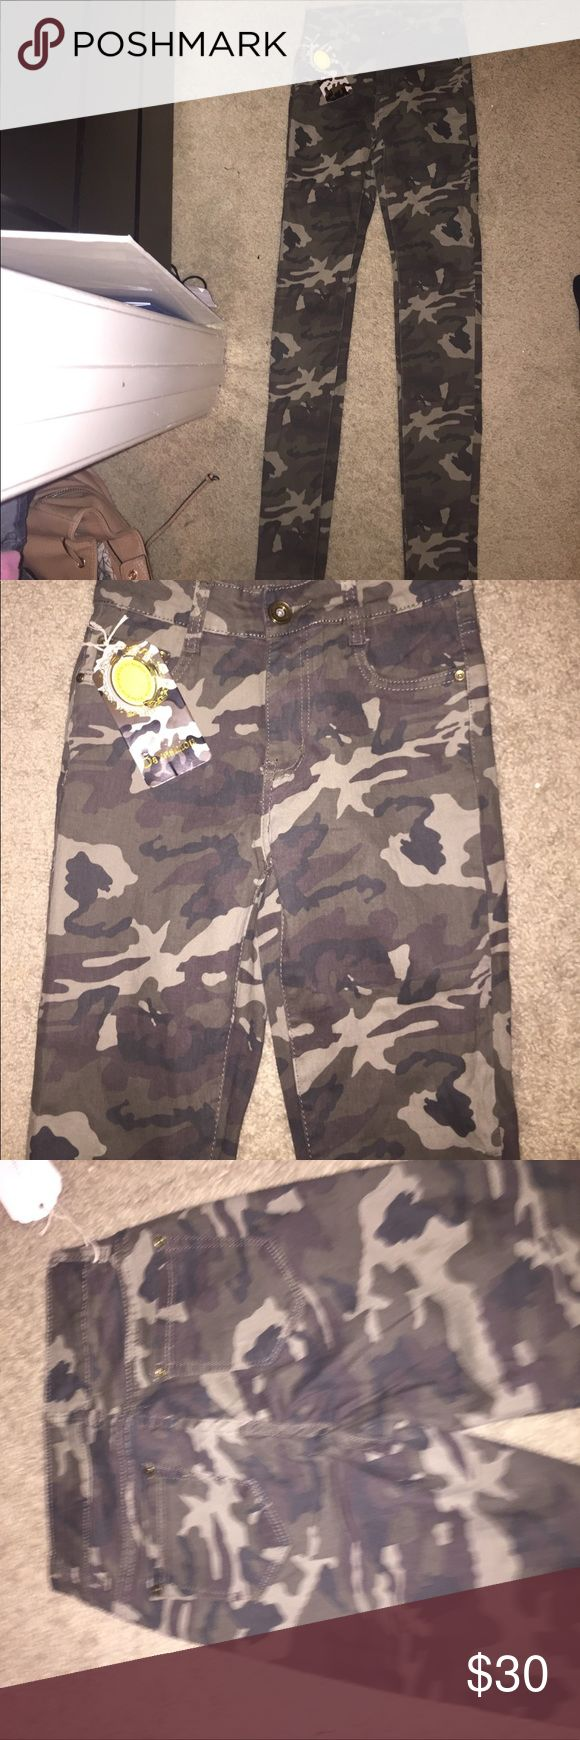 mid rise cami jeans camouflage jeans (negotiable price) Jeans Skinny